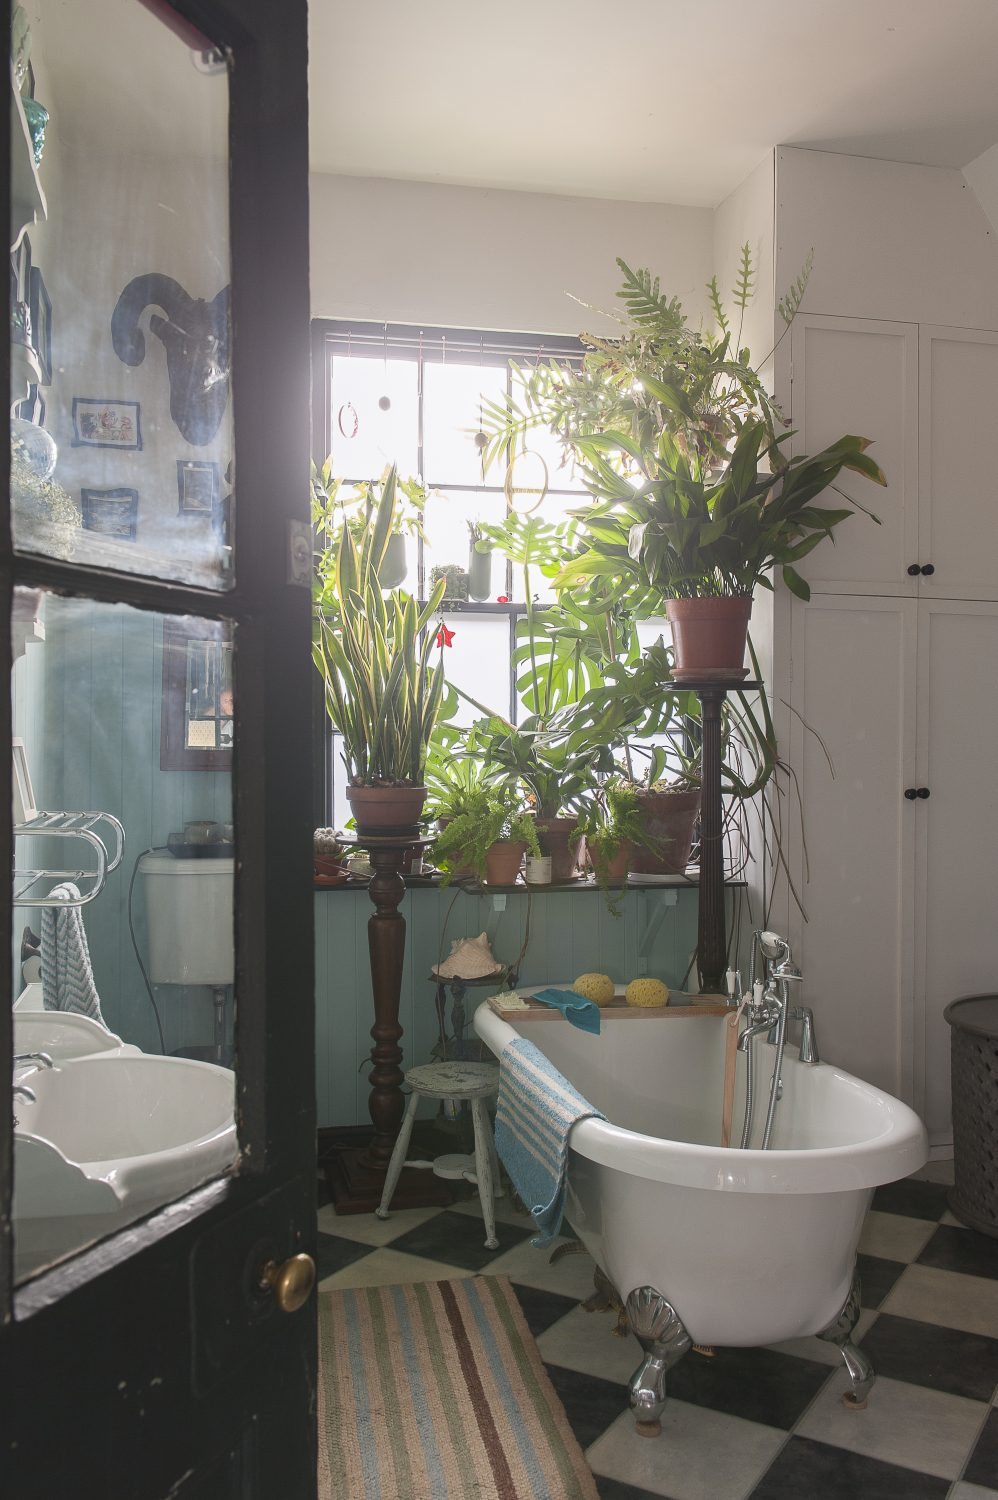 Nestled below a windowsill of tropical greenery the roll top bath offers the perfect place to unwind after a busy day in the shop